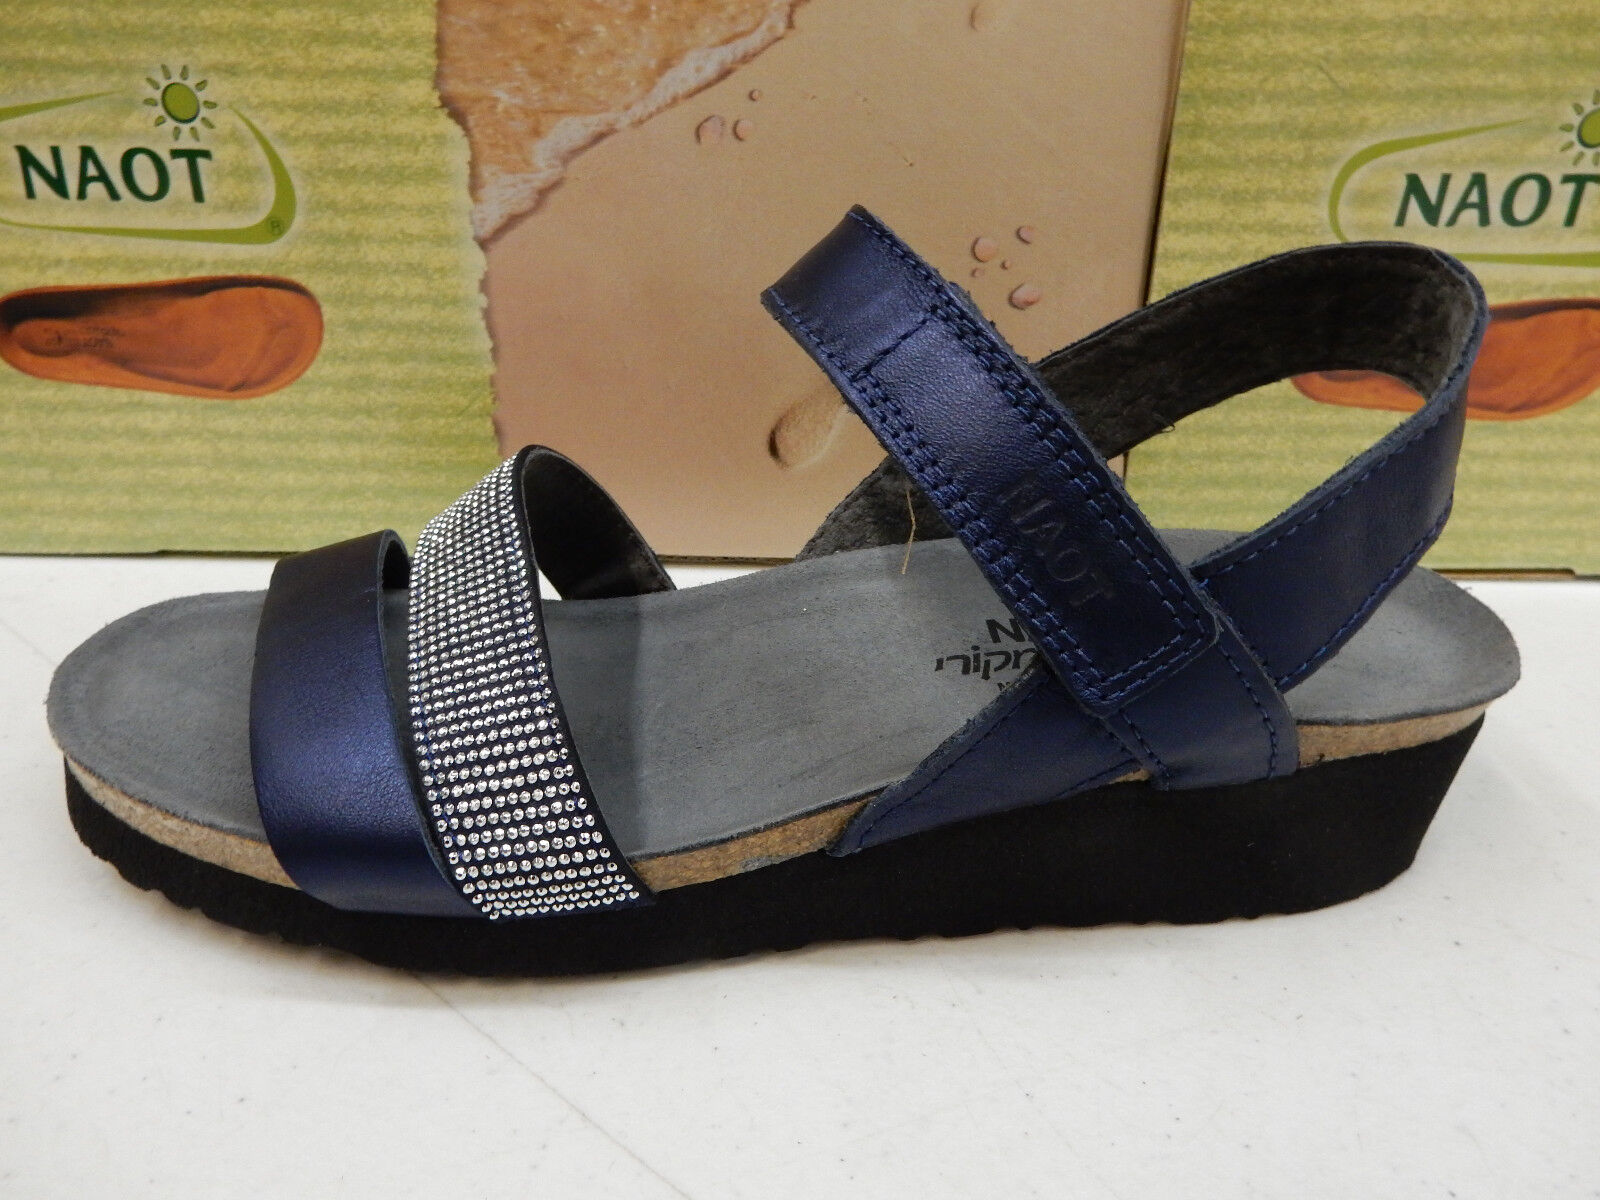 NAOT Donna SANDALS KRISTA POLAR SEA LEATHER NICKEL RIVETS SIZE EU 40